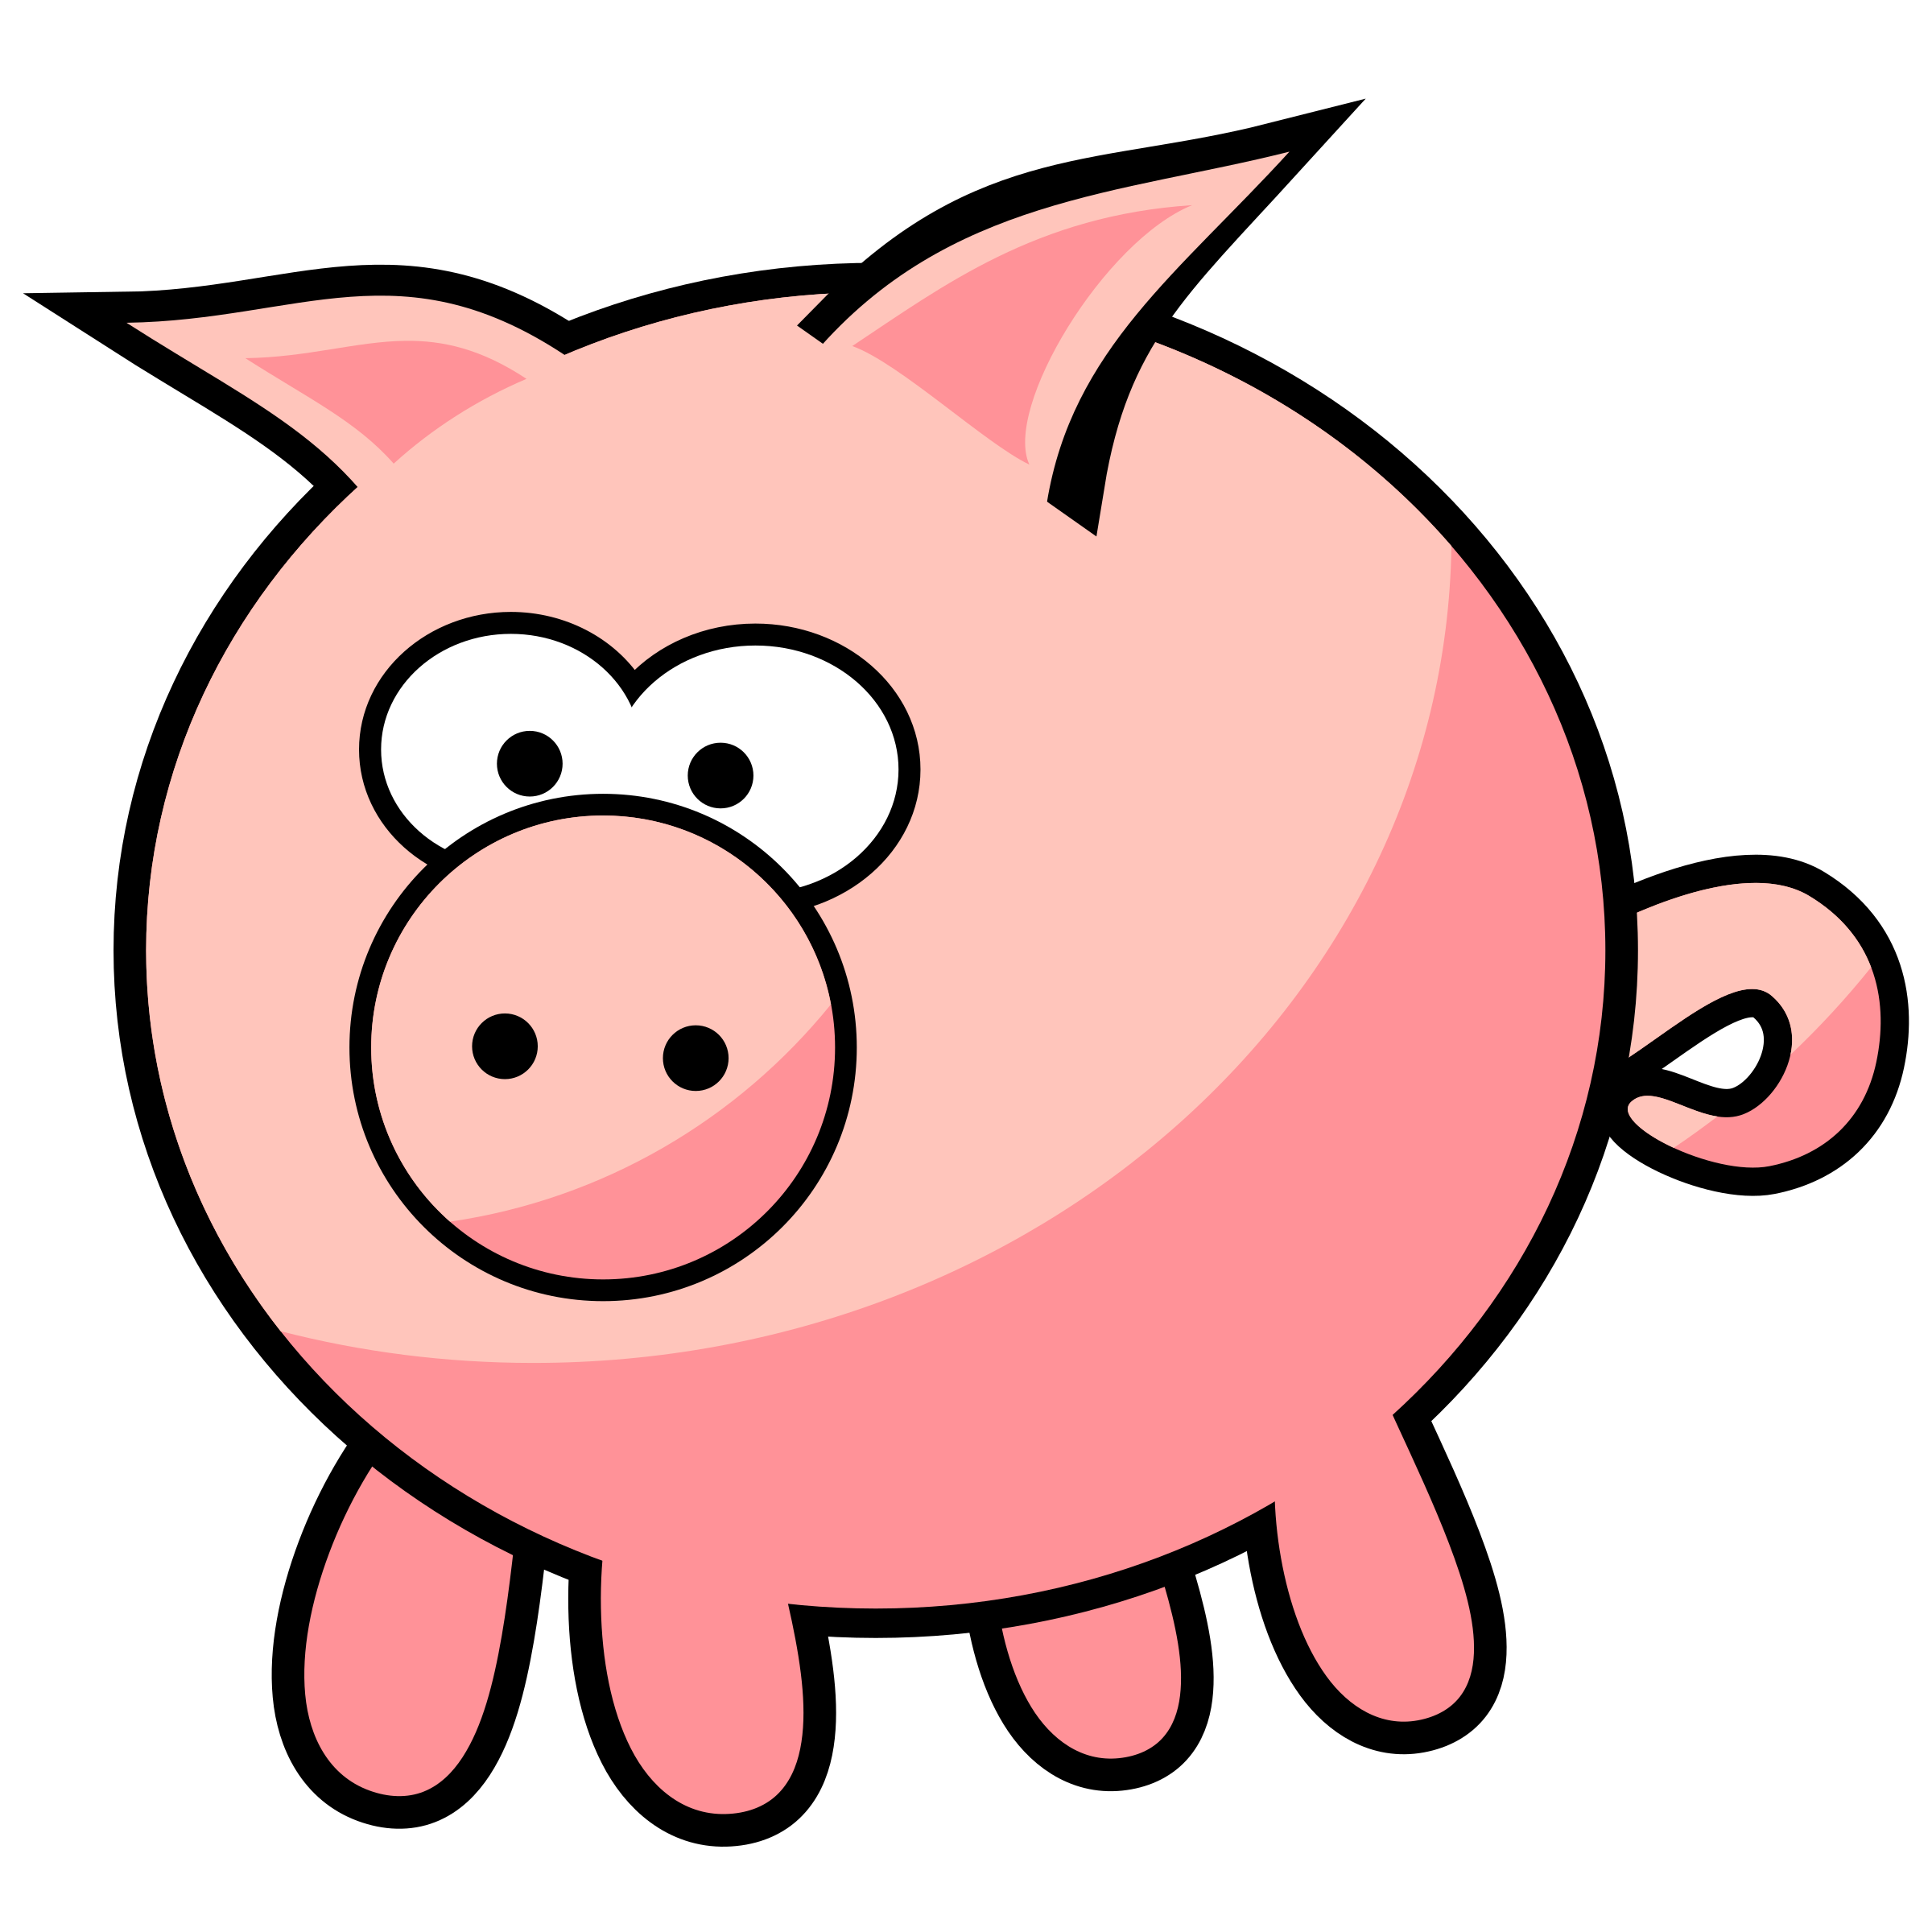 2400x2400 Cartoon Pig By @qubodup, Cute Pig (I Hope)., On @openclipart